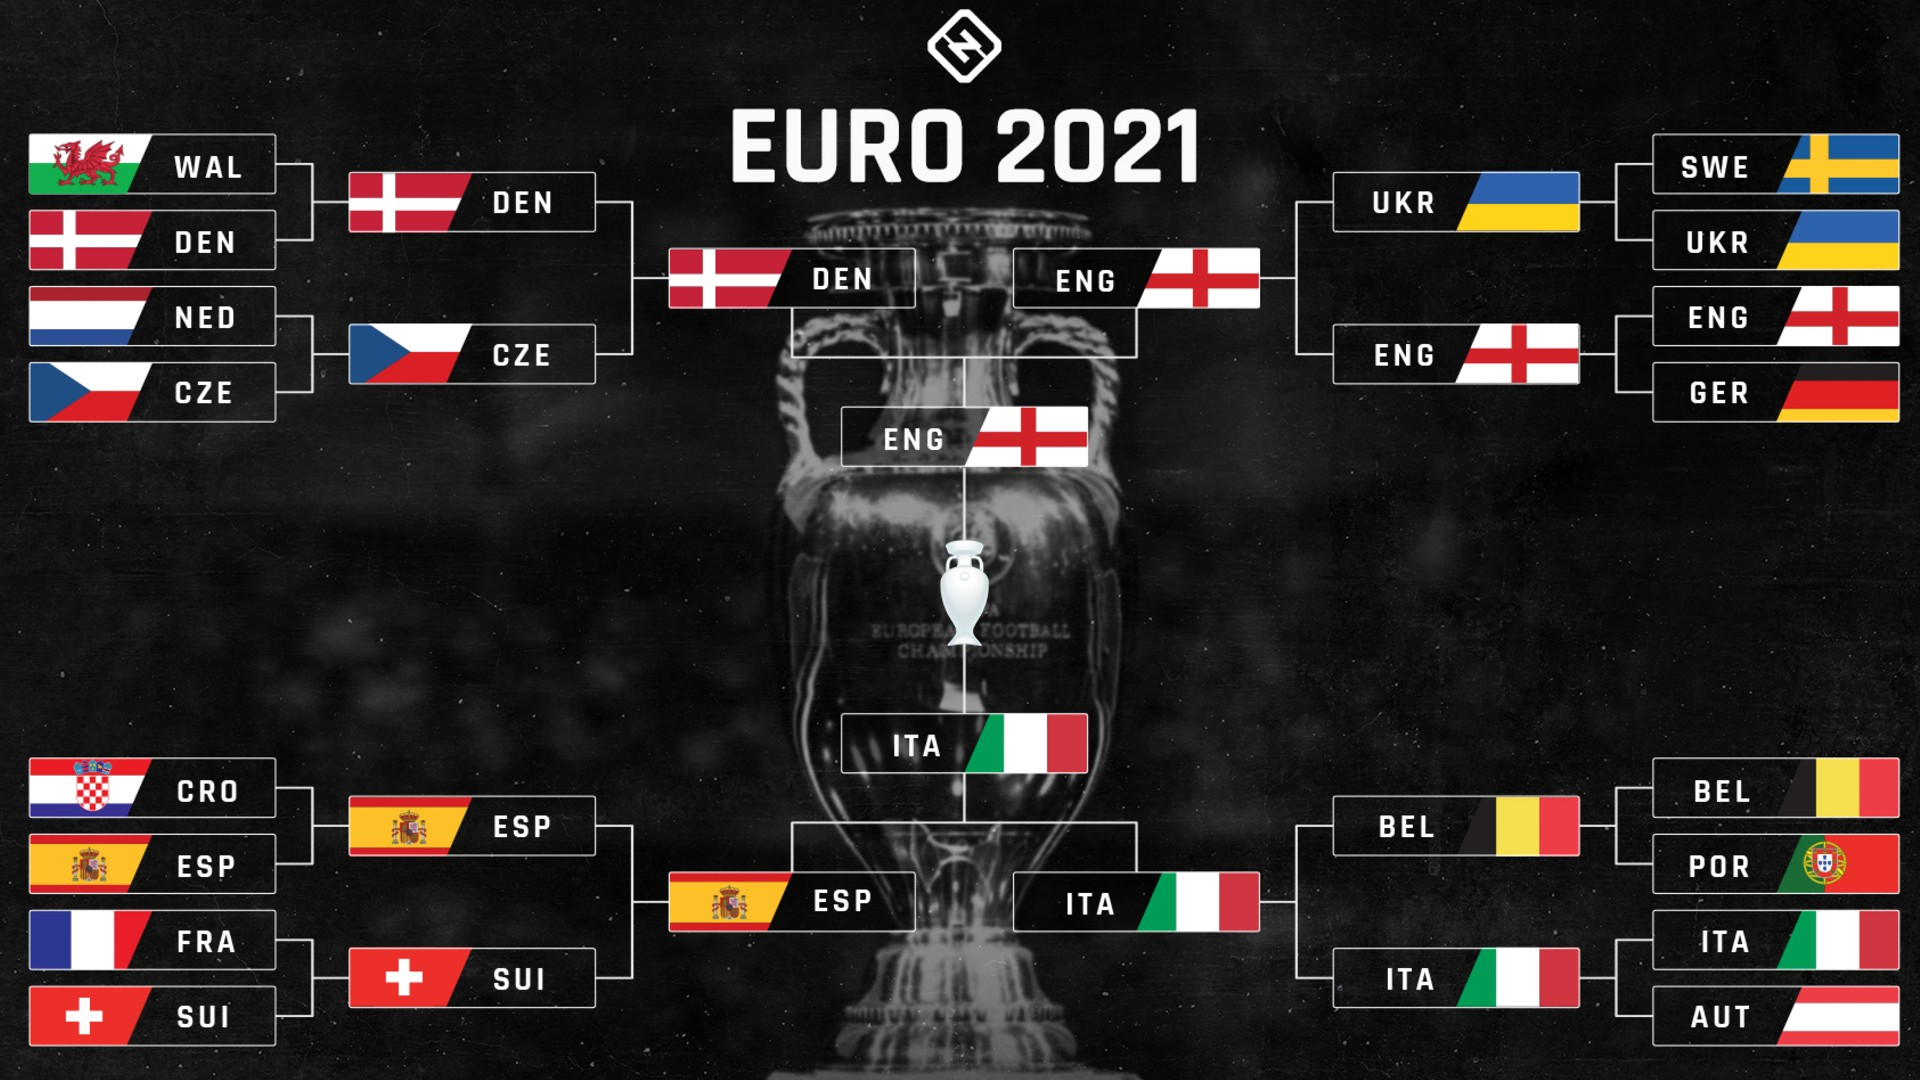 UEFA Euro bracket 2021: TV schedule, channels, streams to watch every quarterfinal in USA